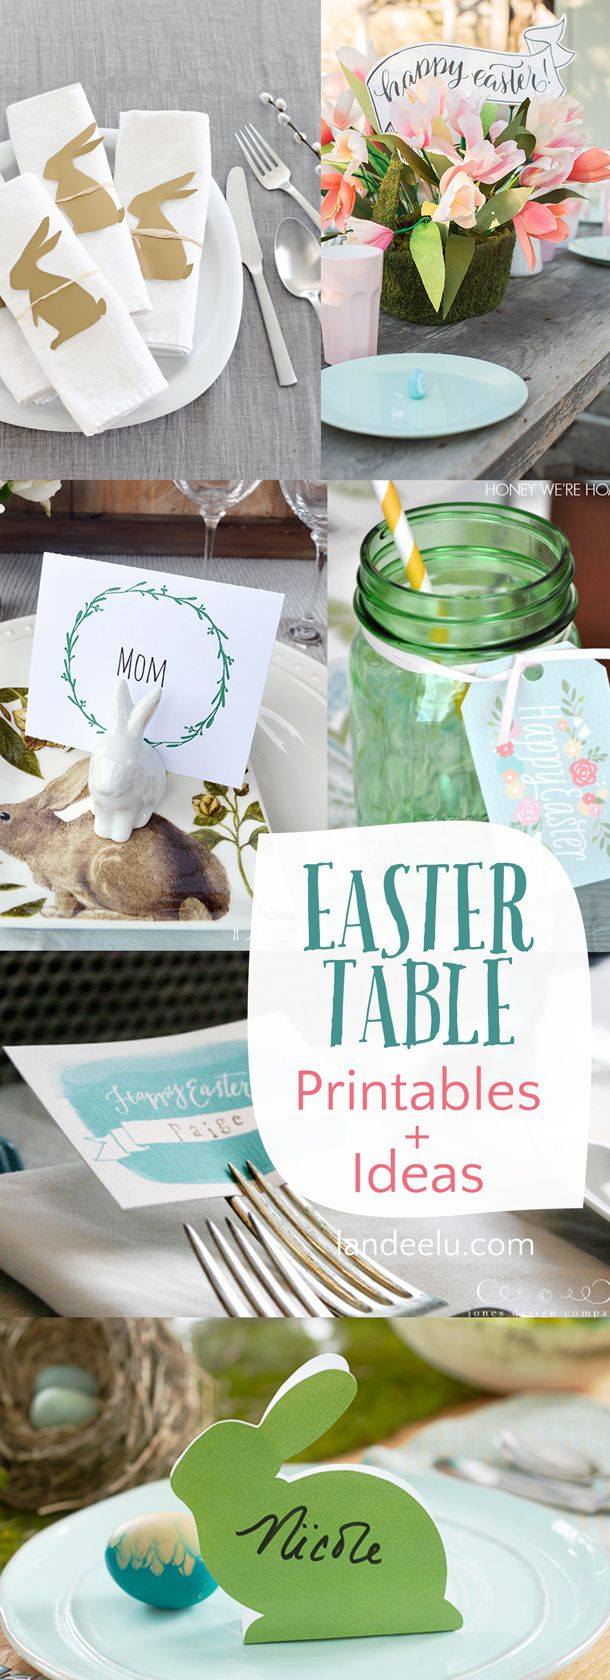 Easter Table Printables and Ideas  | Fun spring inspired Easter table decor ideas.